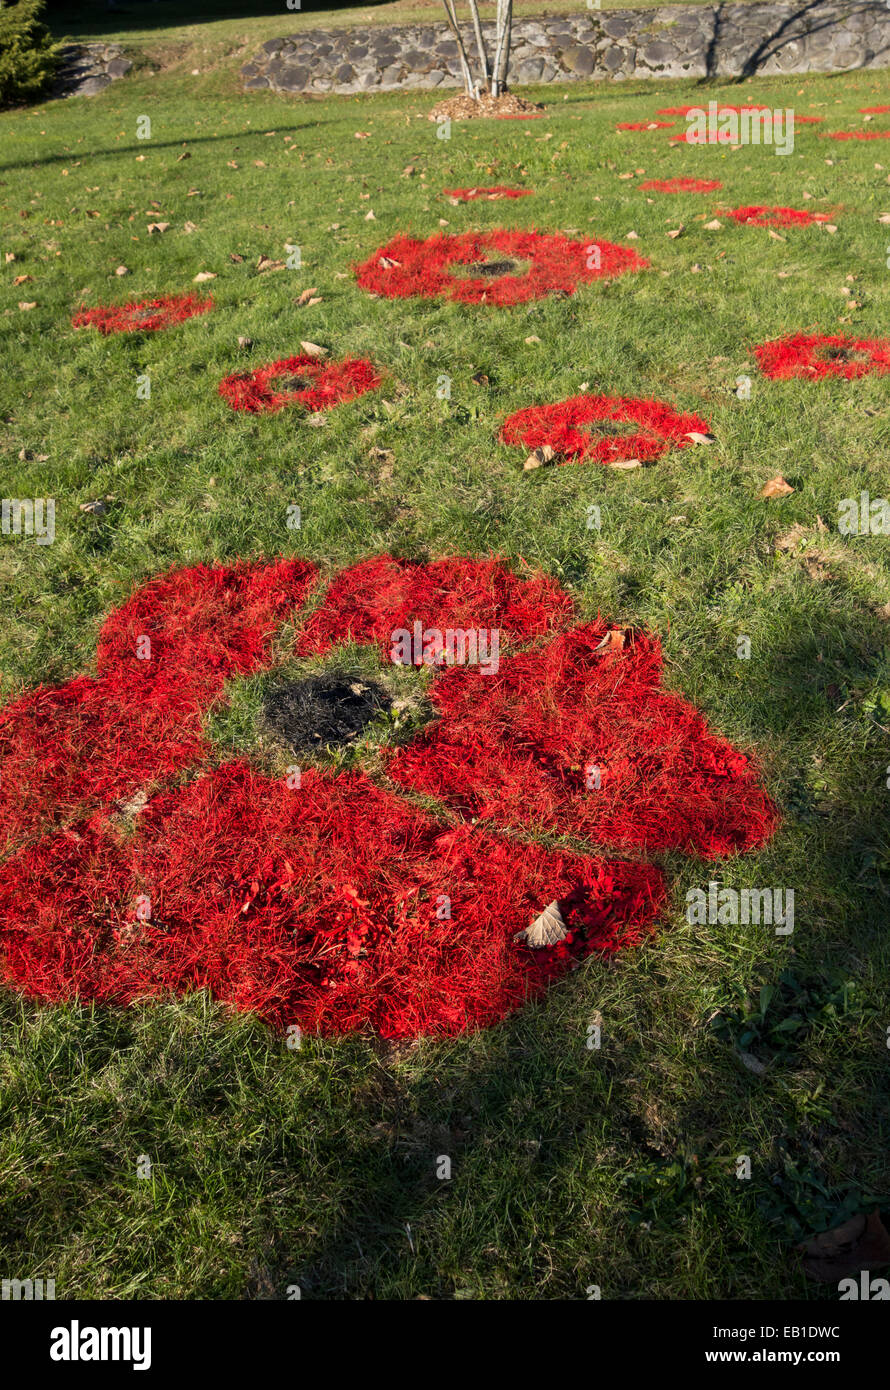 Red poppies painted on the grass as part of a Remembrance Day display.  In Coquitlam, BC, Canada 2014. - Stock Image